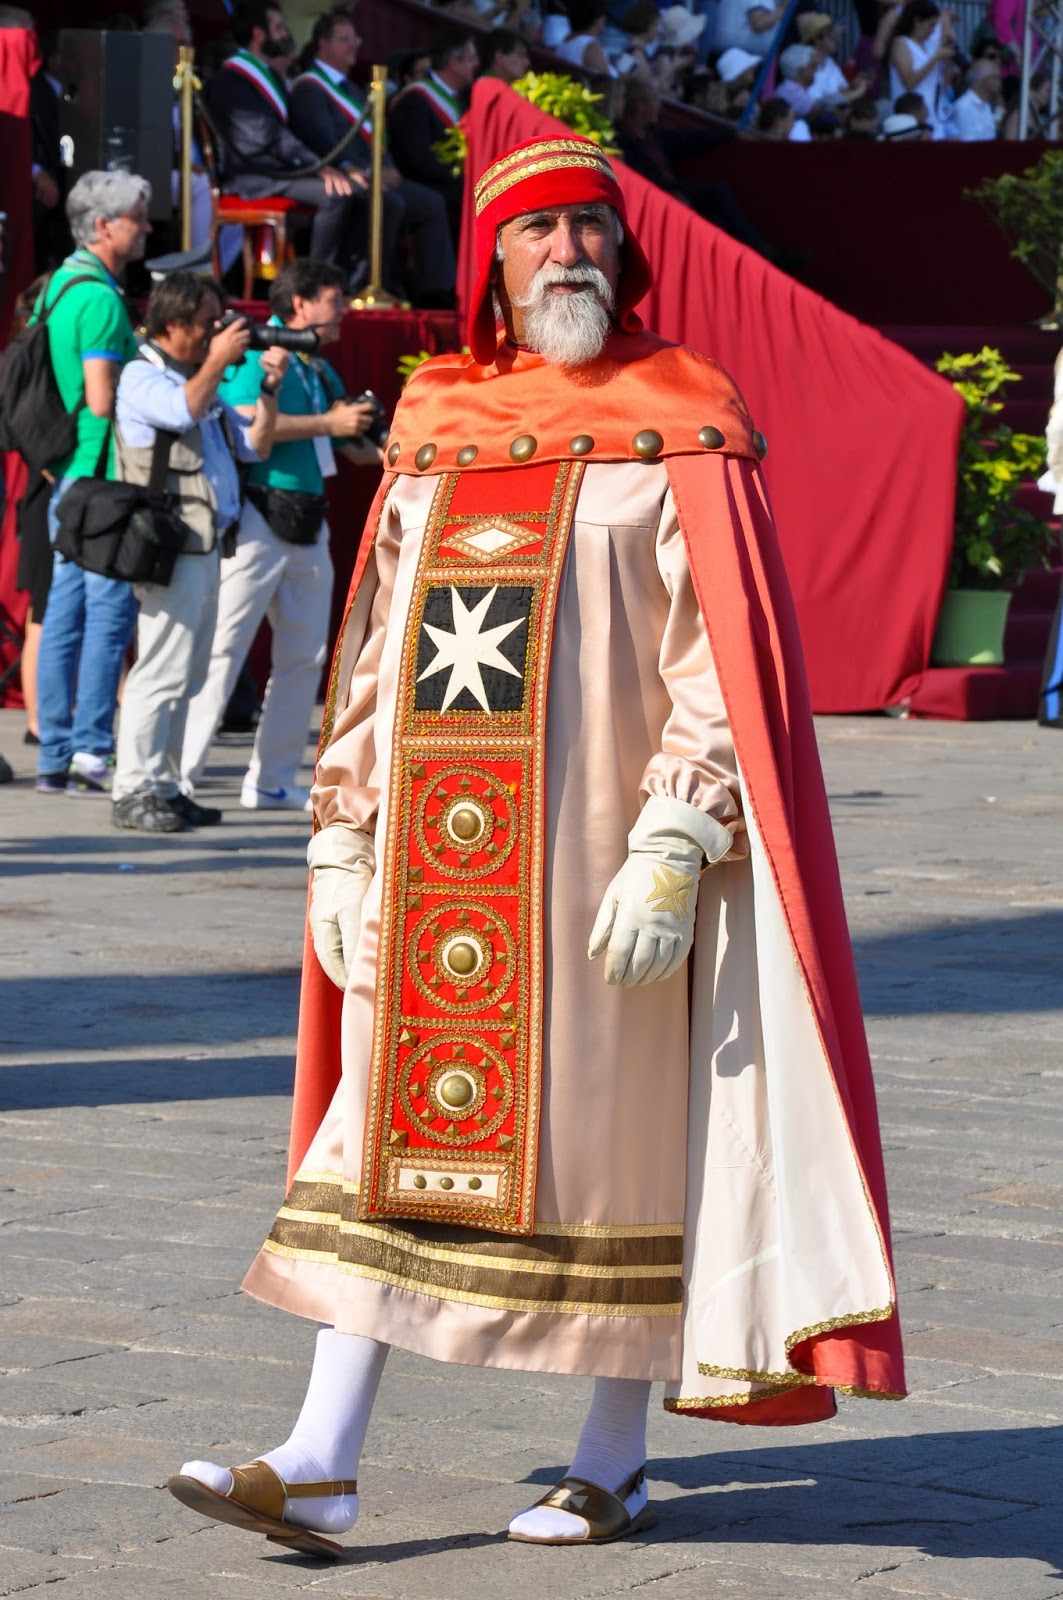 A representative of Amalfi, Historical Parade, Regatta of the Ancient Maritime Republics, Venice, Italy